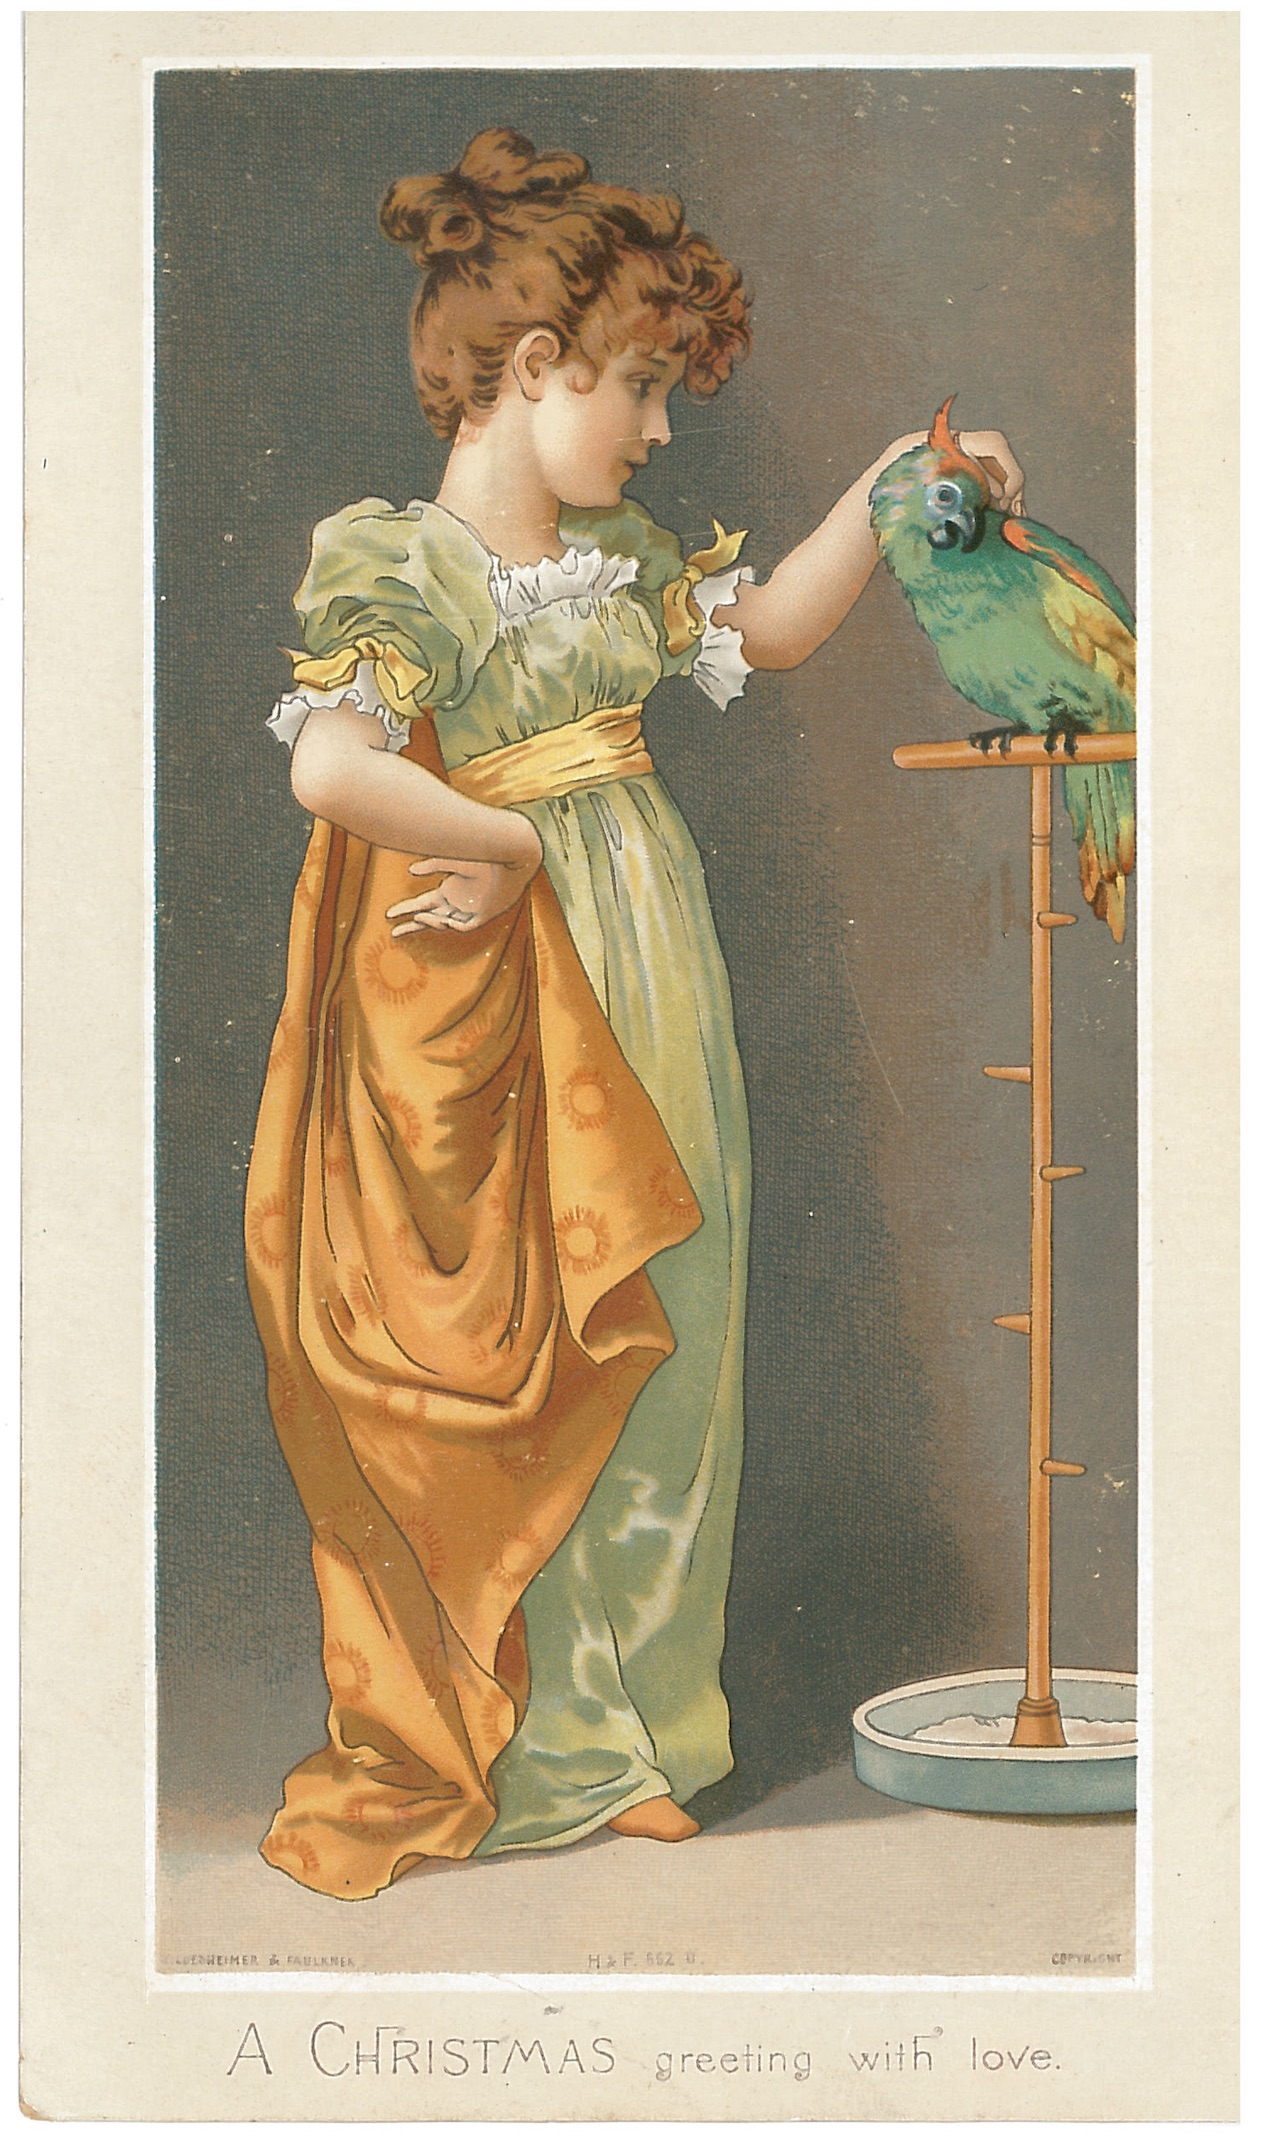 The Victorian Christmas Card As Aesthetic Object